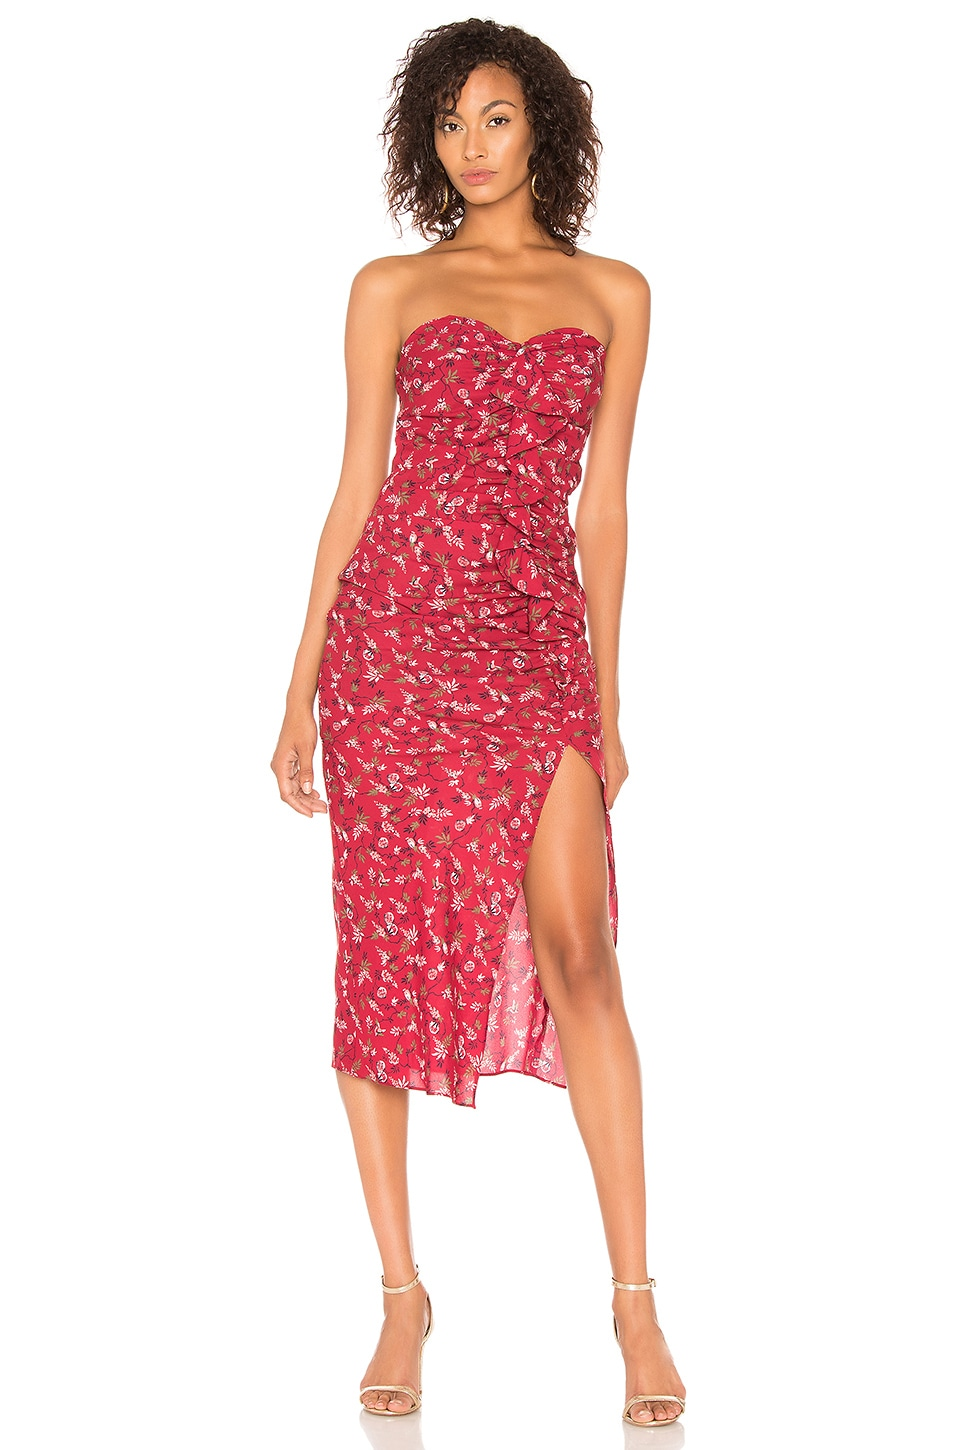 LIKELY Ali Dress in Rumba Red Multi